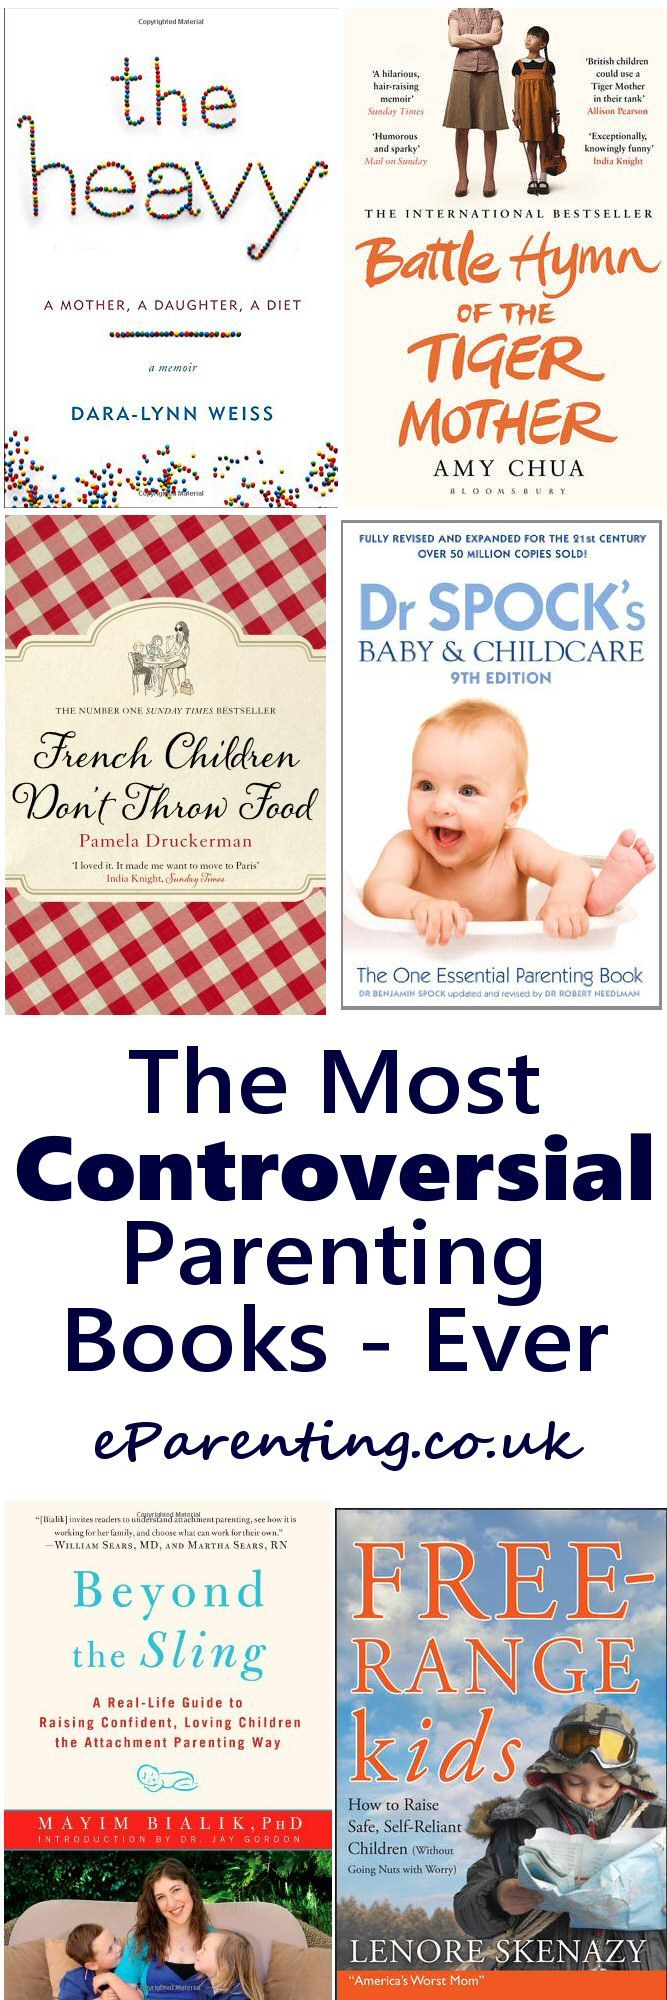 The Most Controversial Parenting Books Ever - Tiger Mother, Free-Range Parent or French Maman? #parenting #parentingbooks #controversialparentingbooks #tigermother